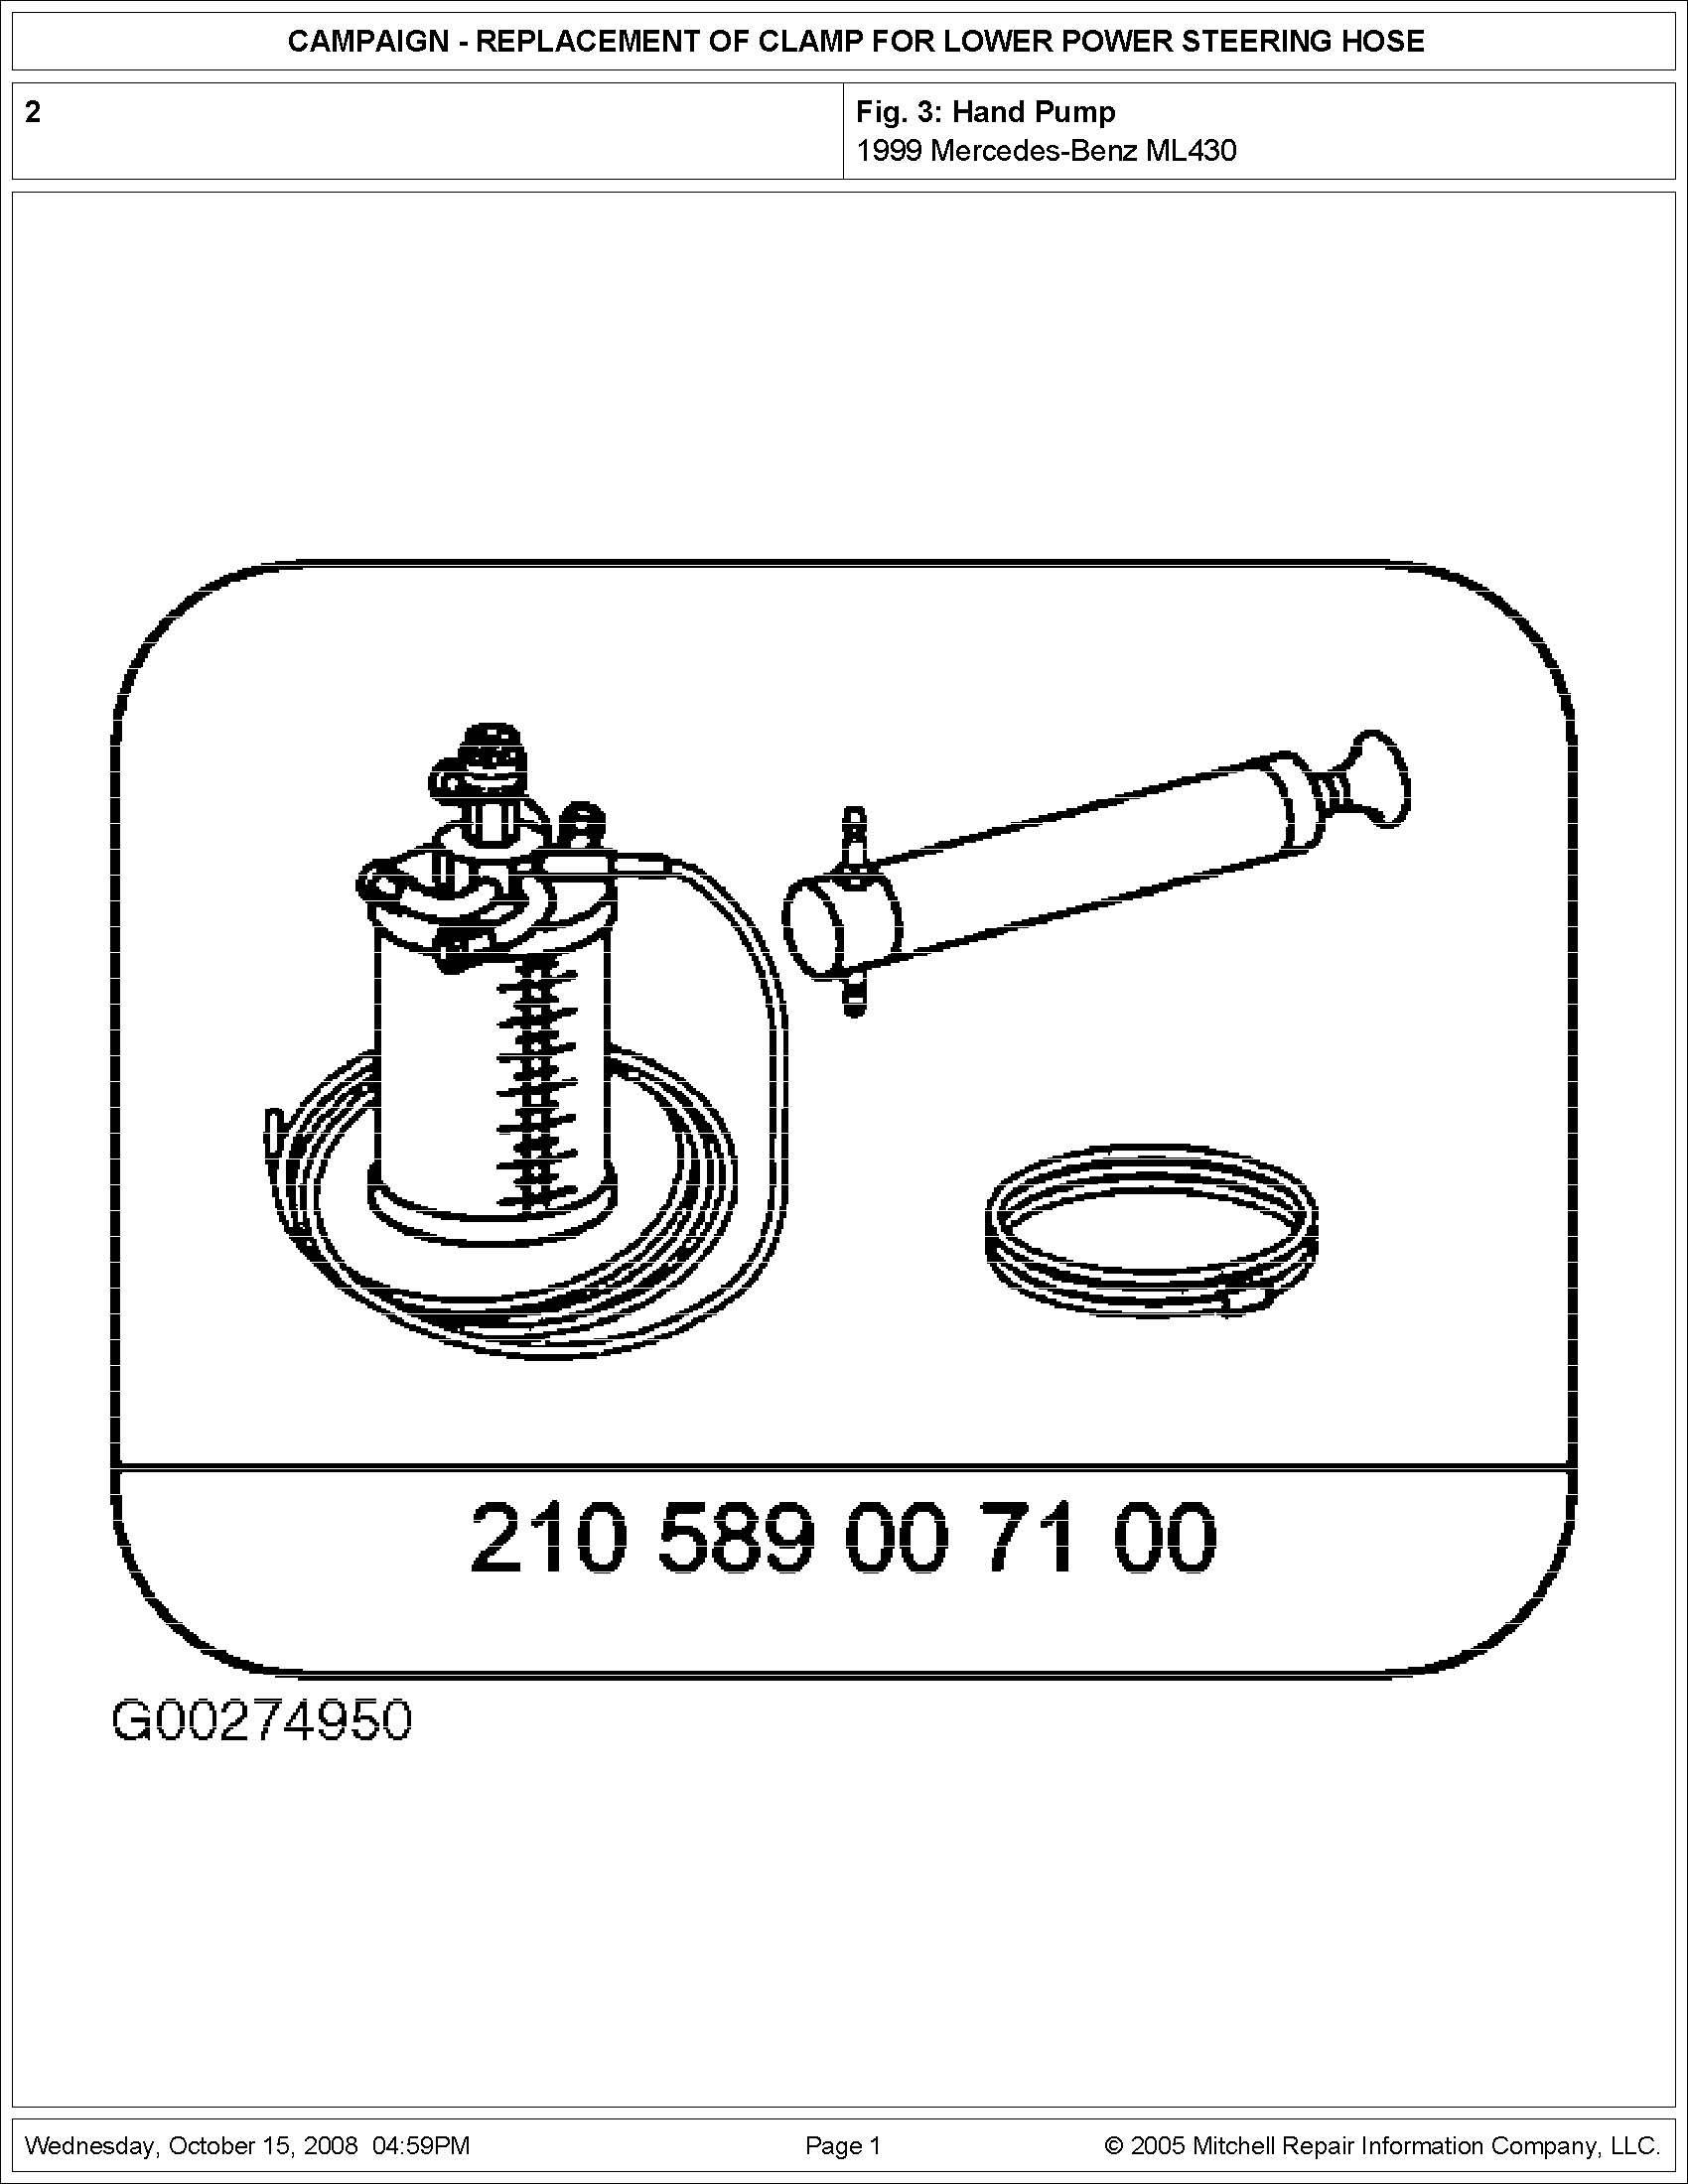 Snap Mercedes Benz Ml430 Diagram Imageresizertoolcom Photos On Cls500 Fuse Box 99 Steering Pump Hose To Cooler